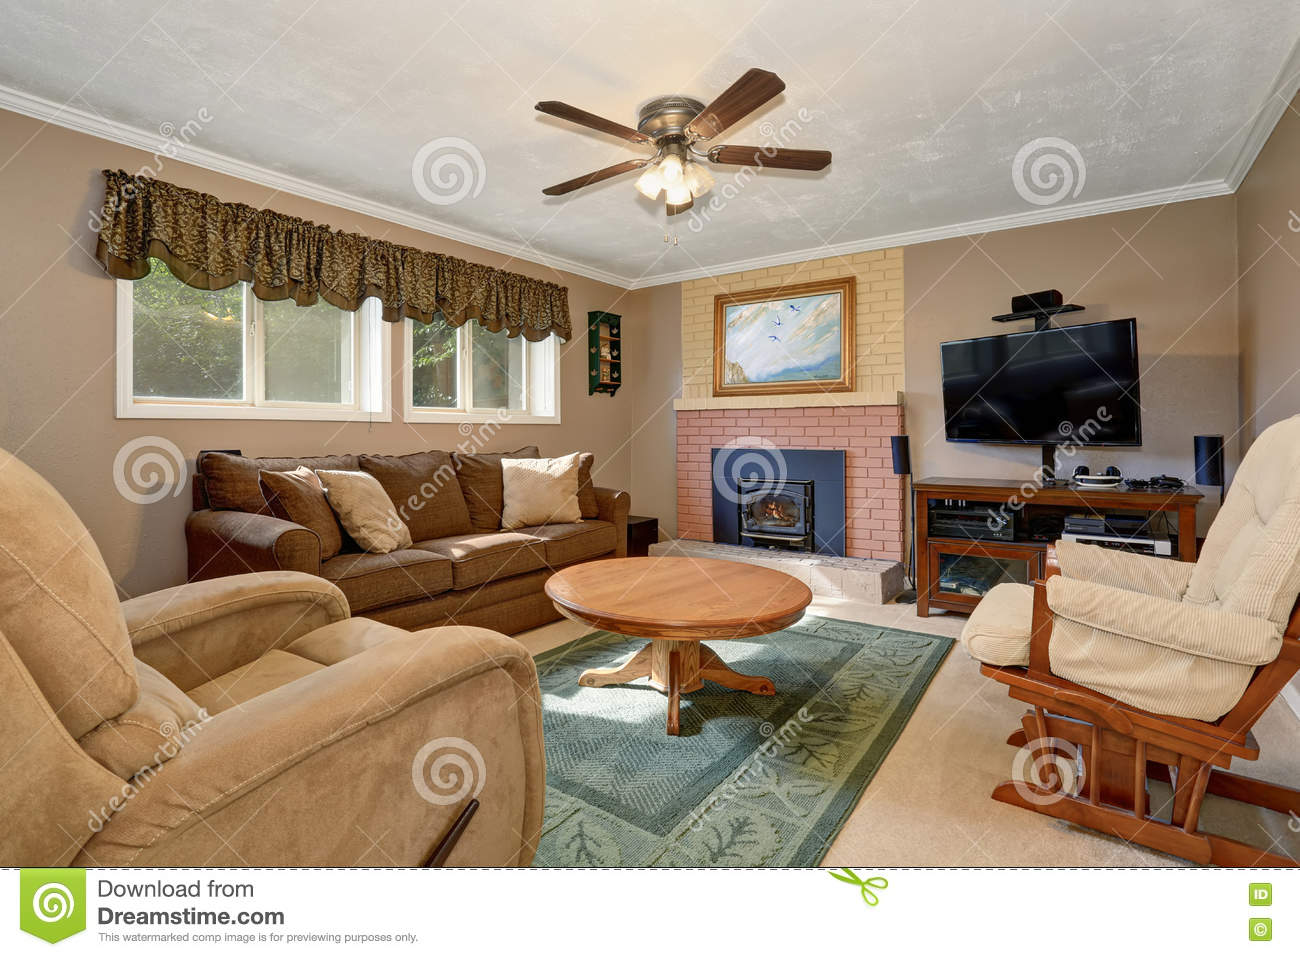 American Wohnzimmer Typical American Living Room With Brown Couch And